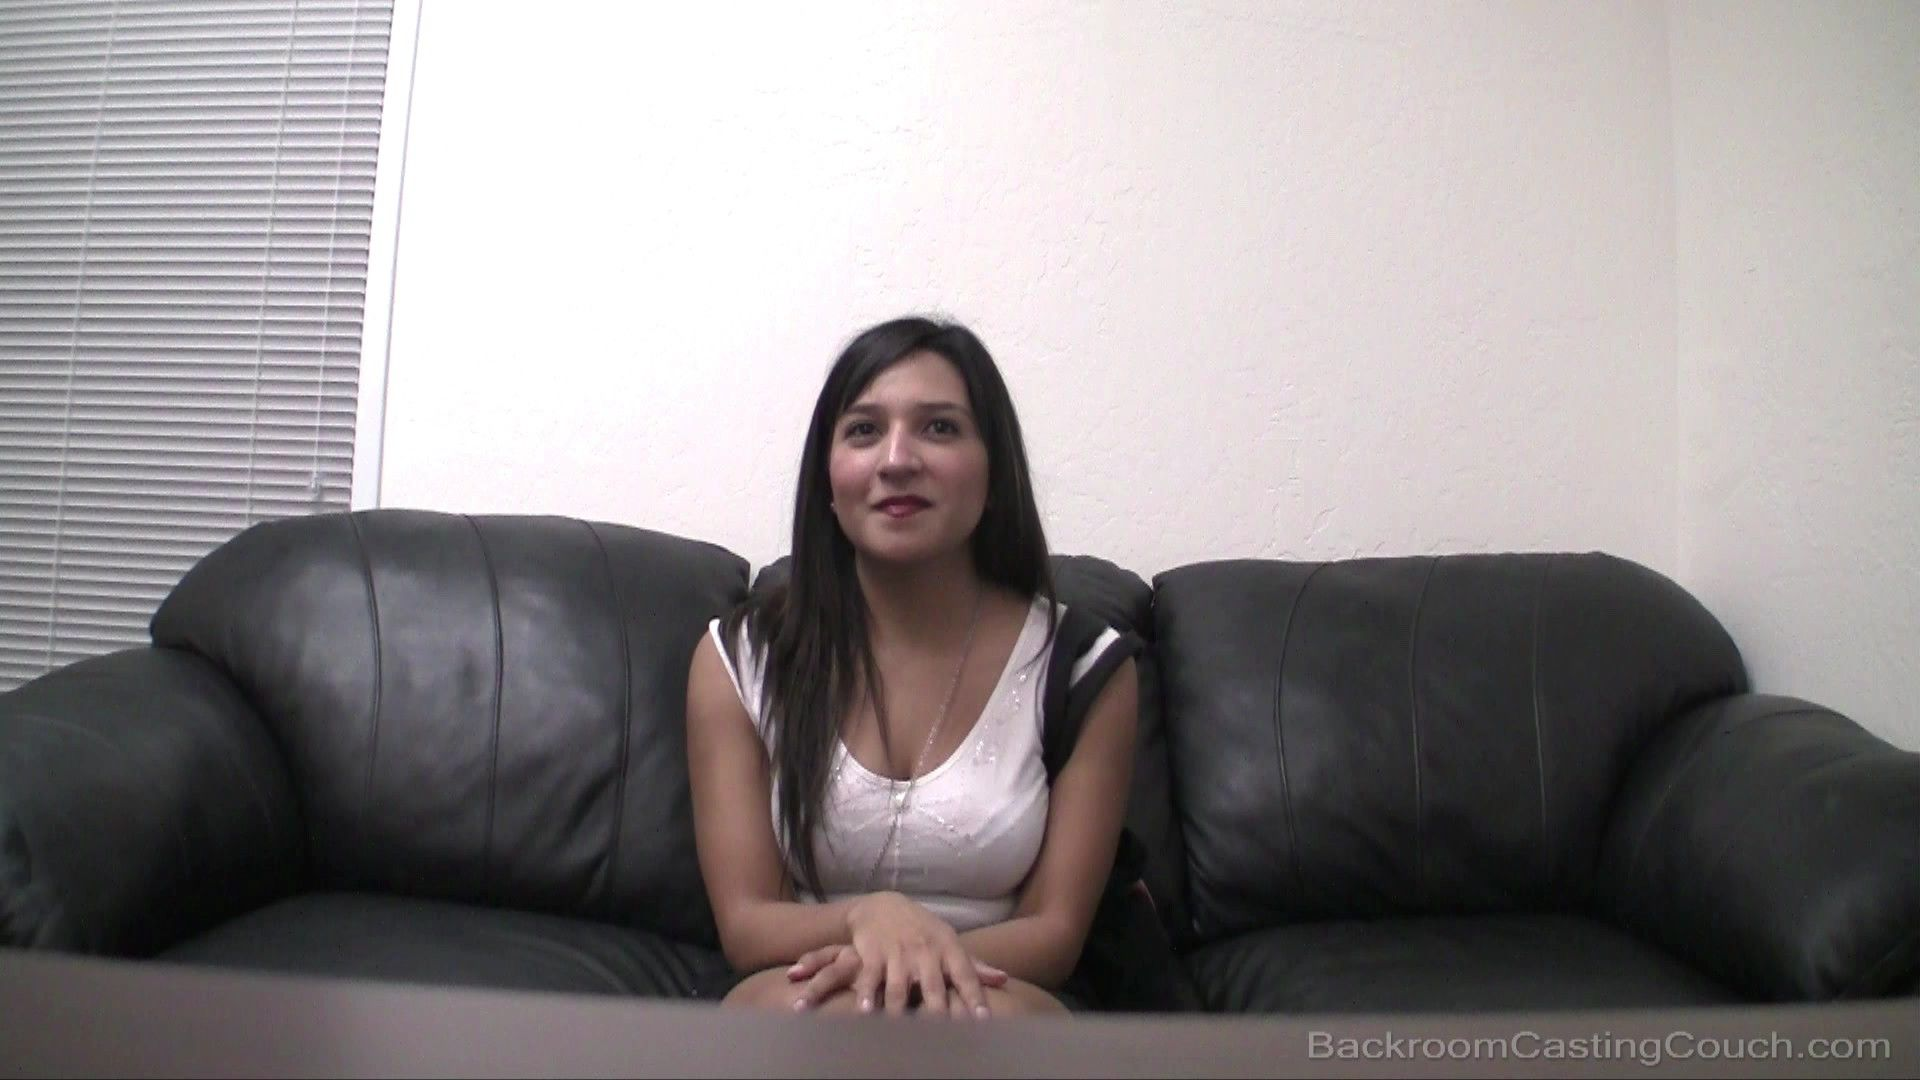 Casting Couch Painal - 28 Images - Picture 14 Teen Katrina -9601